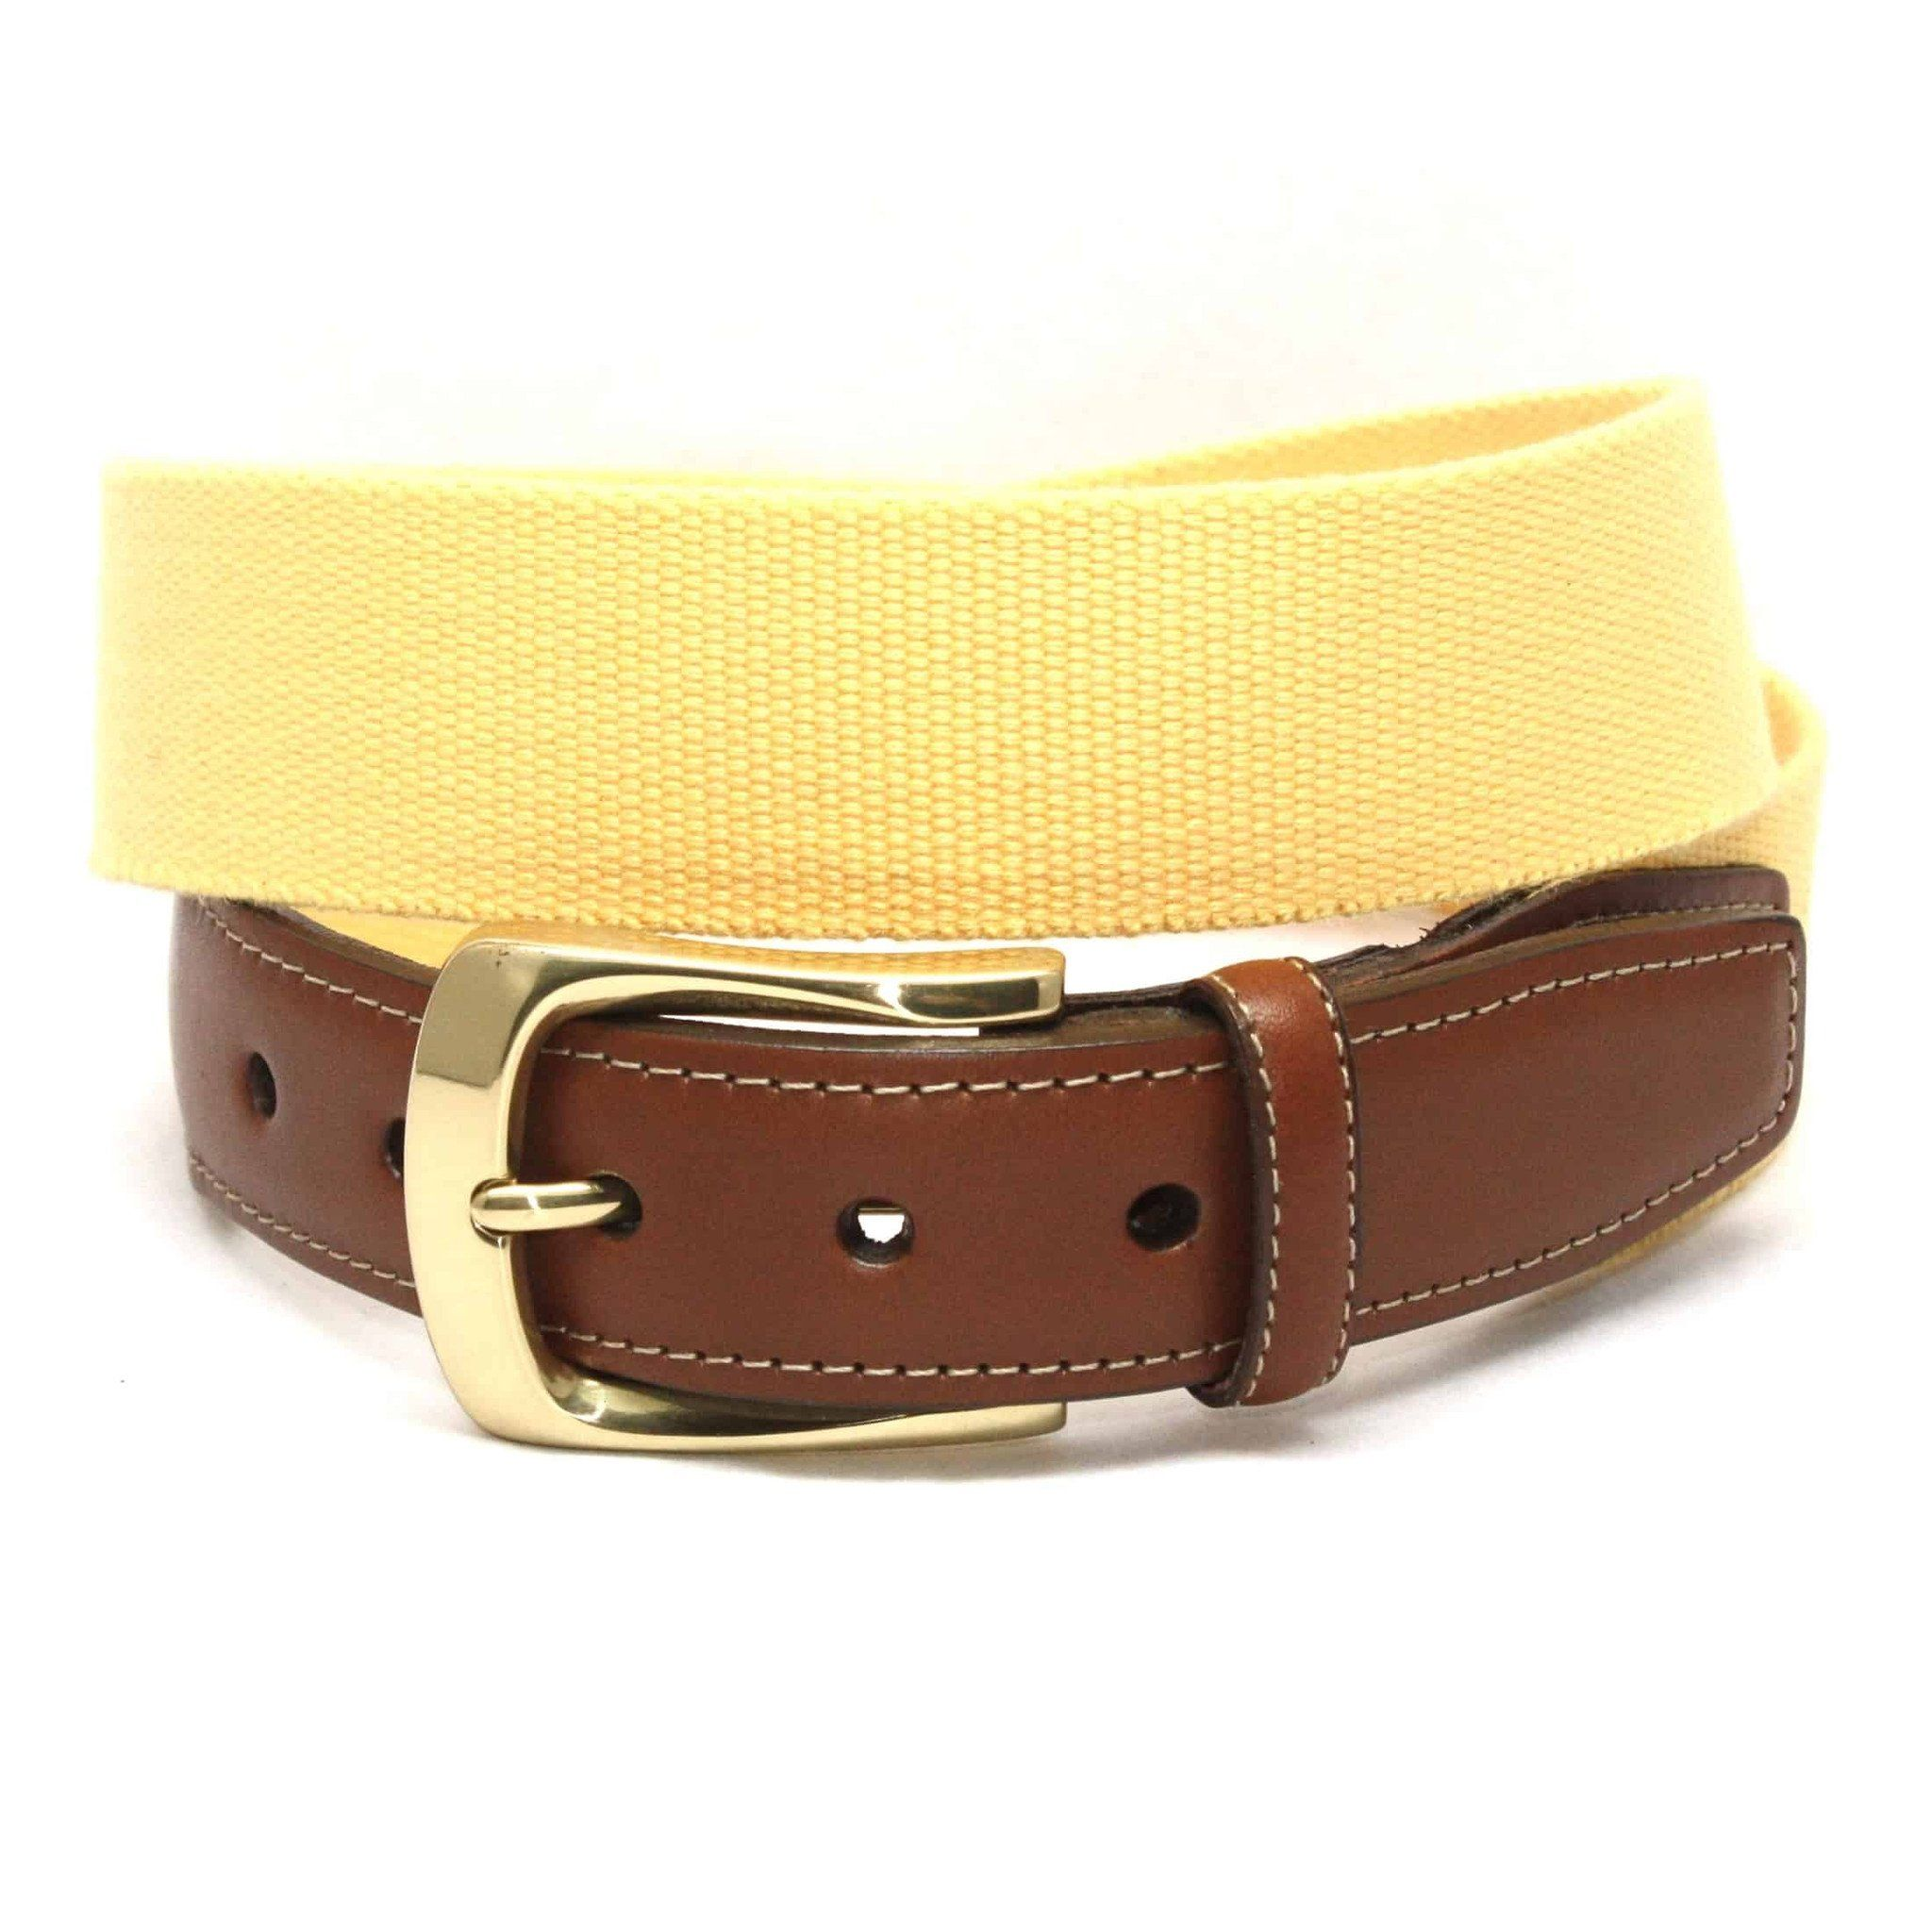 European Ribbed Surcingle Belt - Yellow,BELT,GentRow.com, | GentRow.com